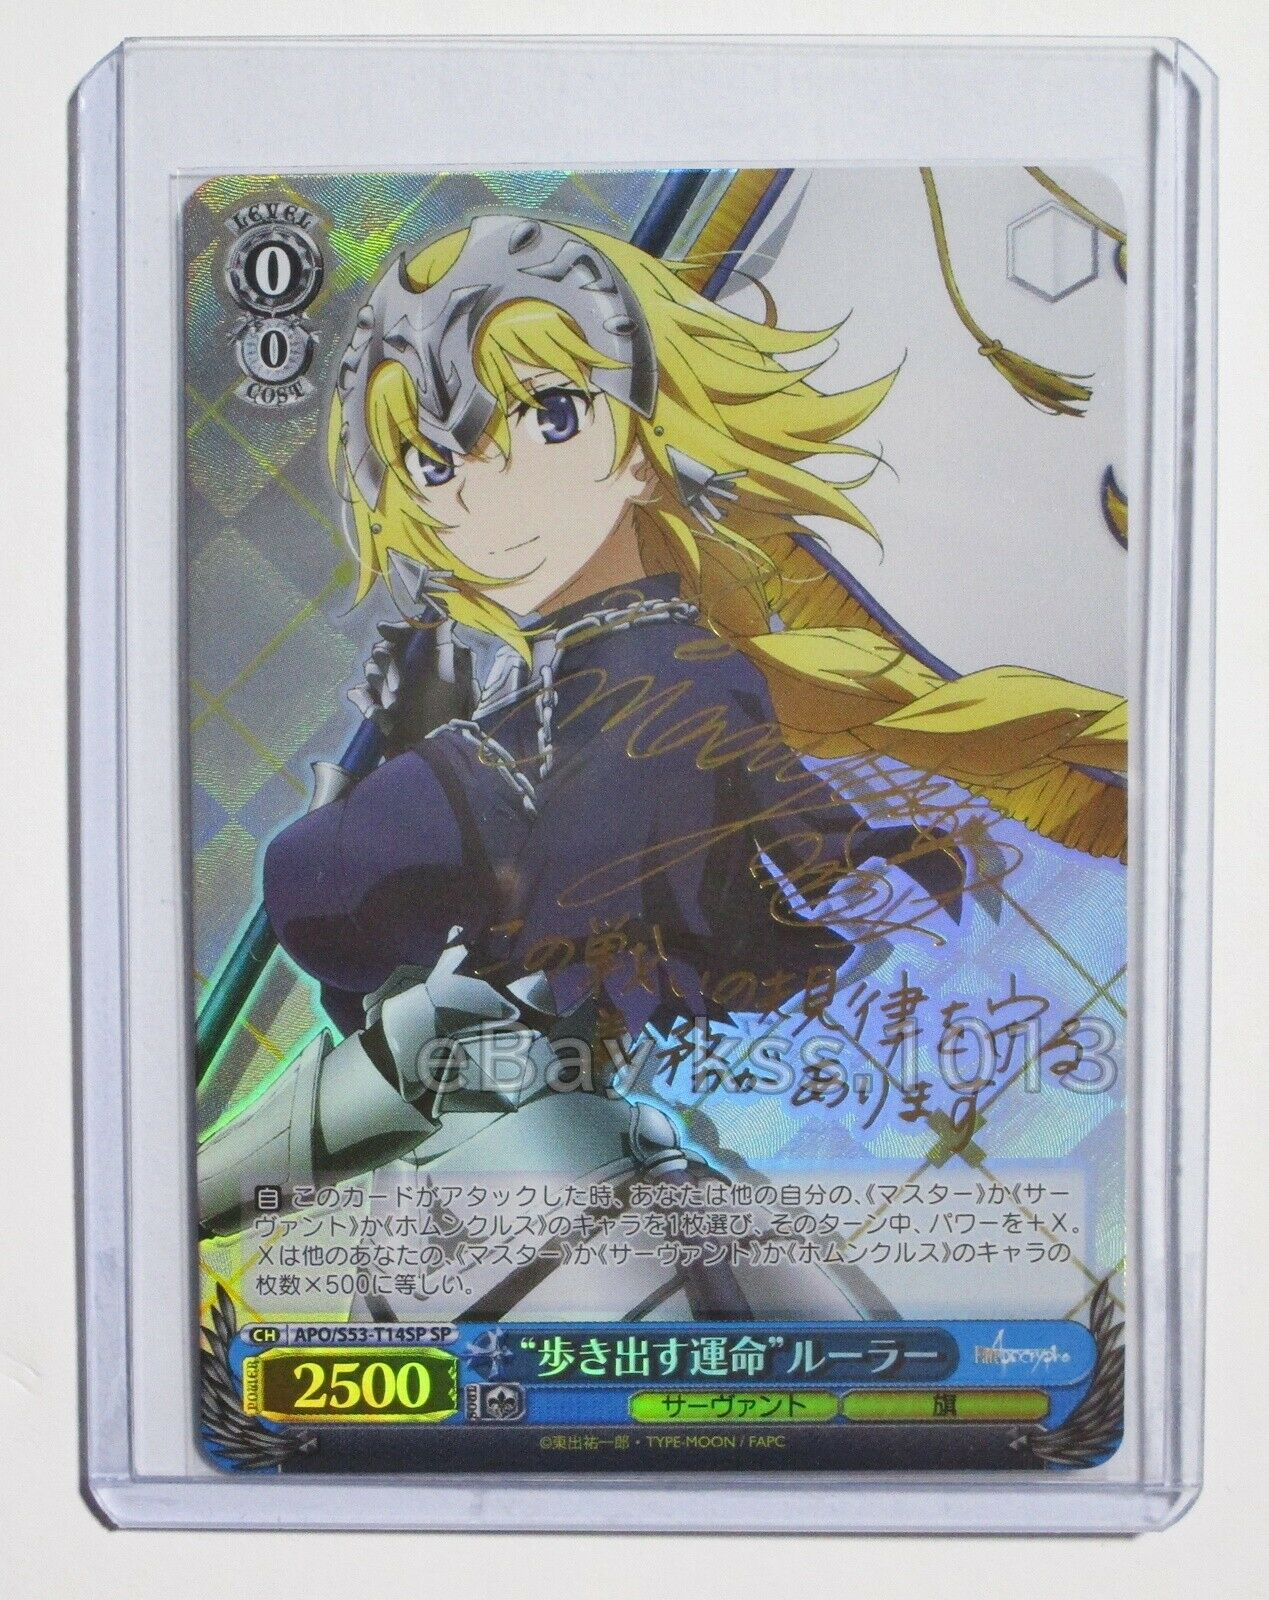 Signed Weiss Weiss Weiss black Fate Apocrypha APO S53-T14SP FOIL Ruler (Jeanne d'Arc) 1b54cb